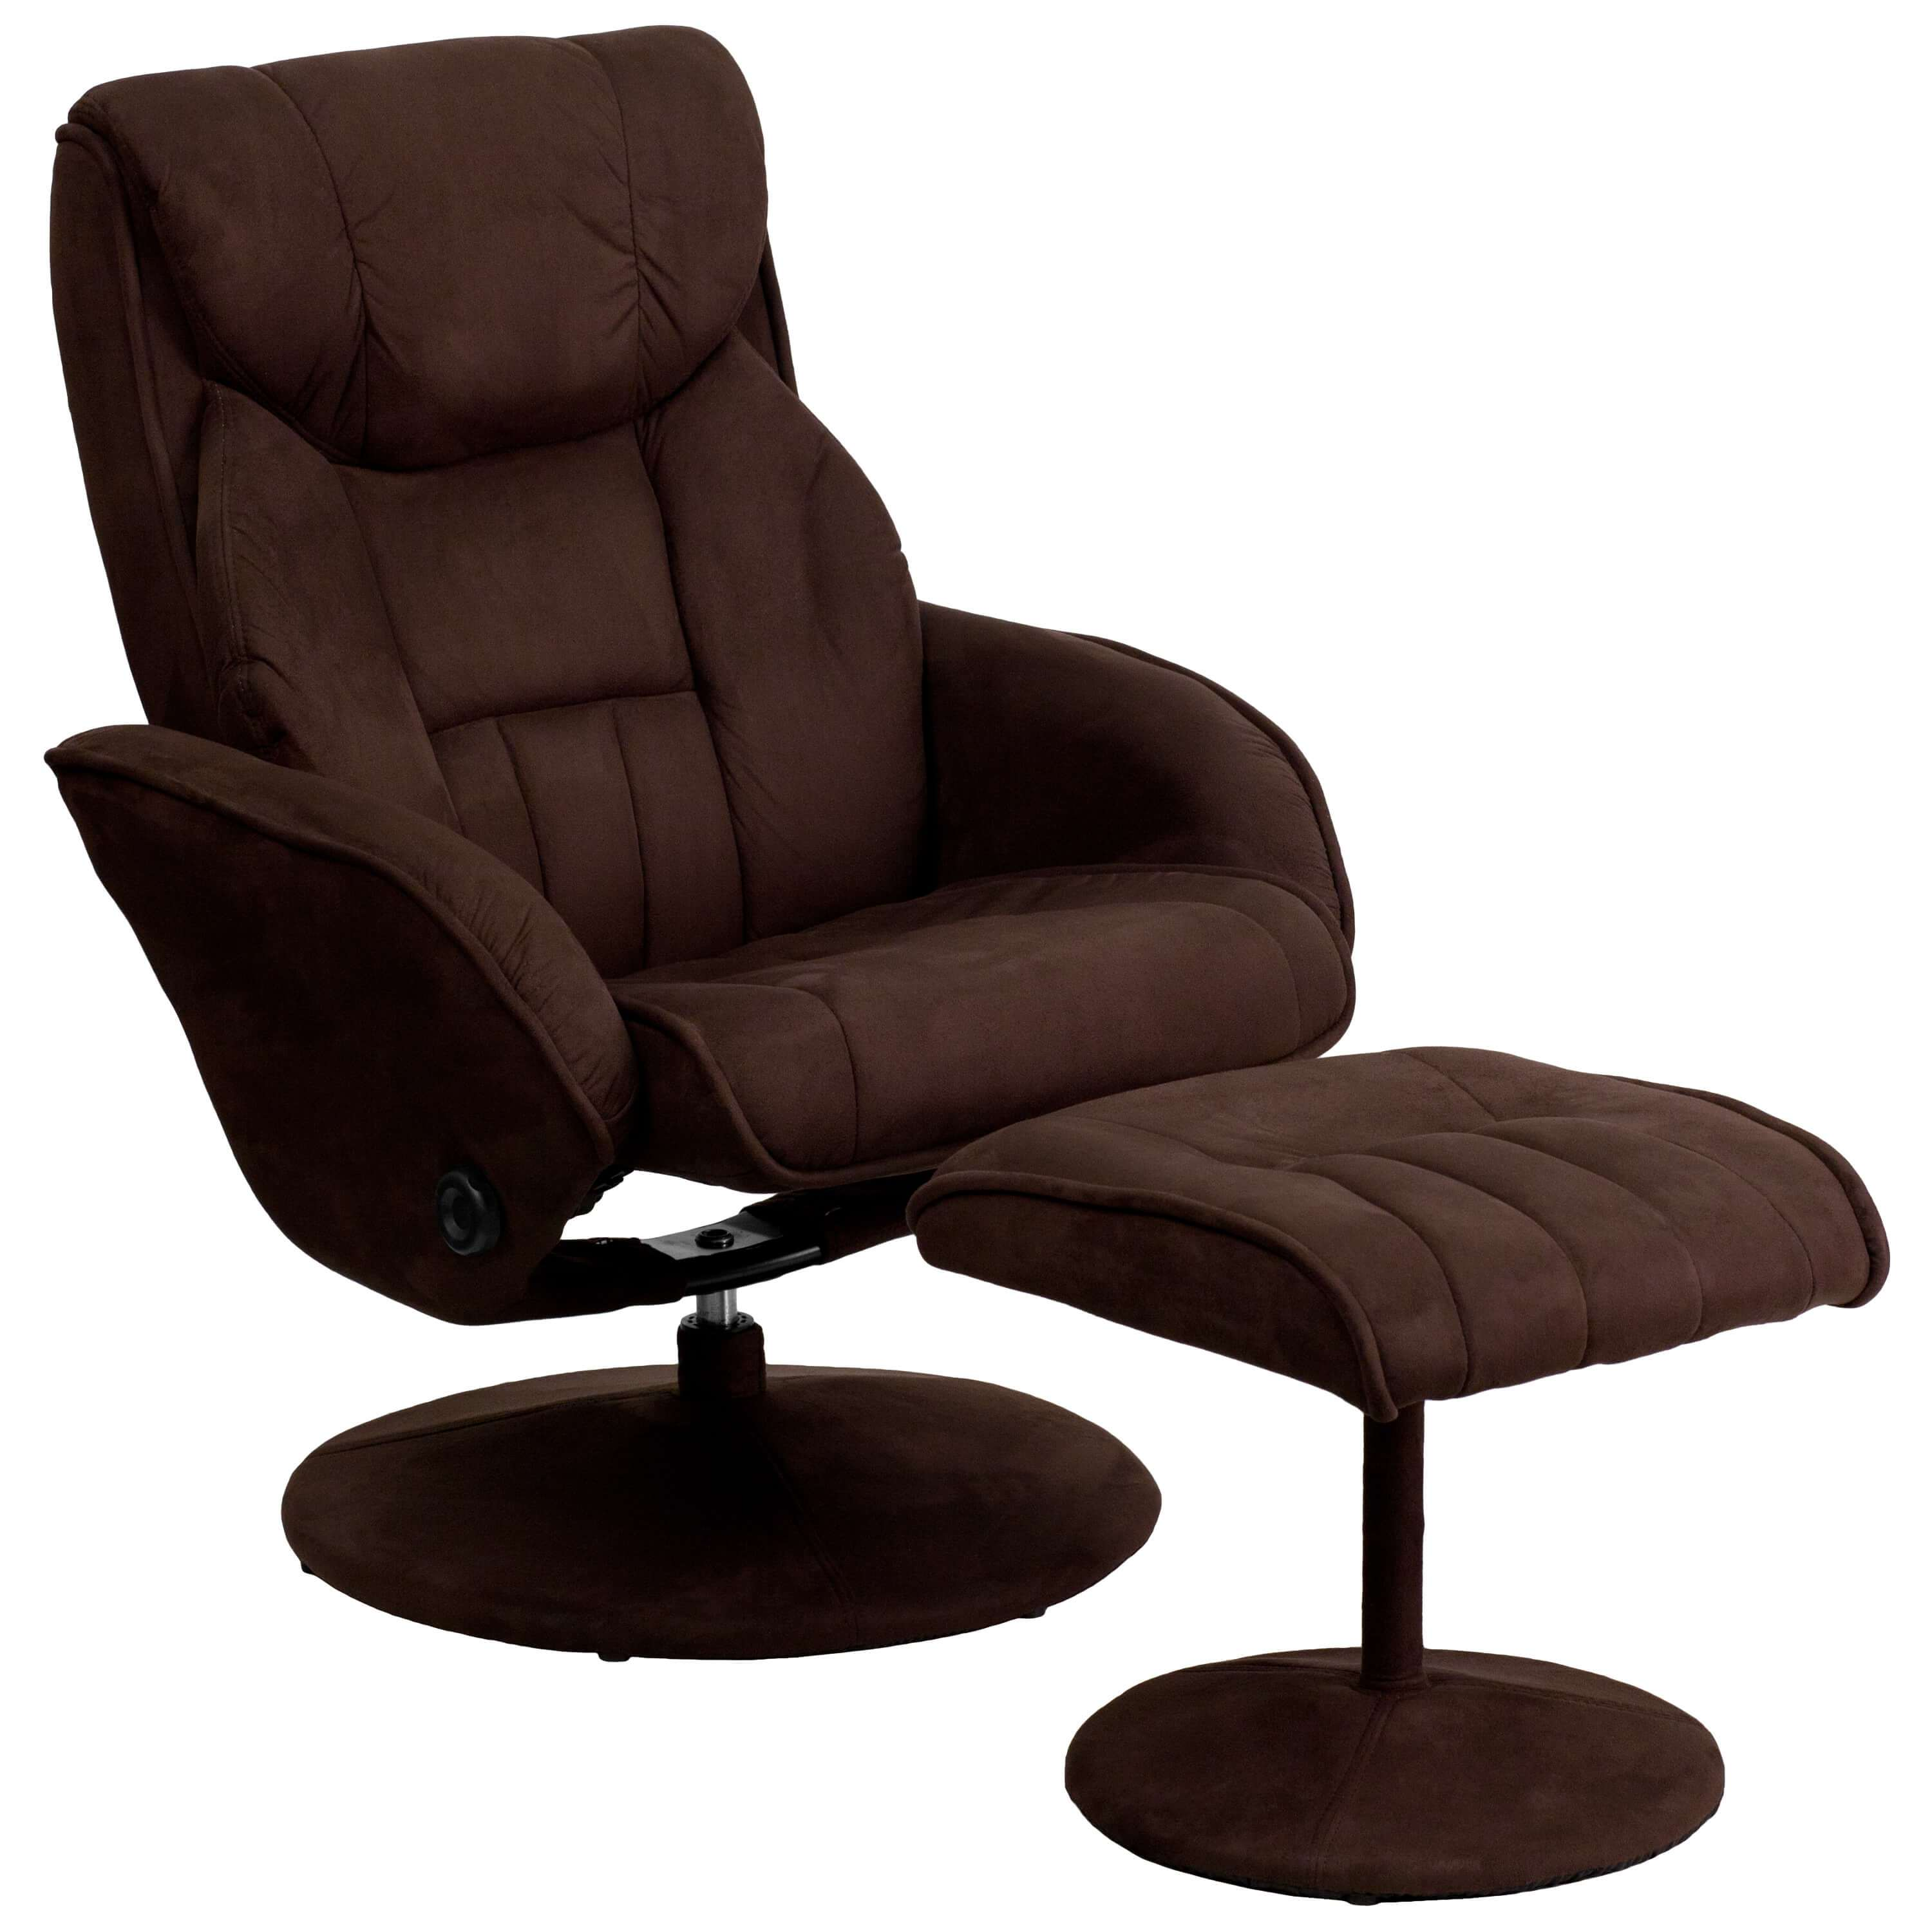 Contemporary Recliners Brown Recliner Chair